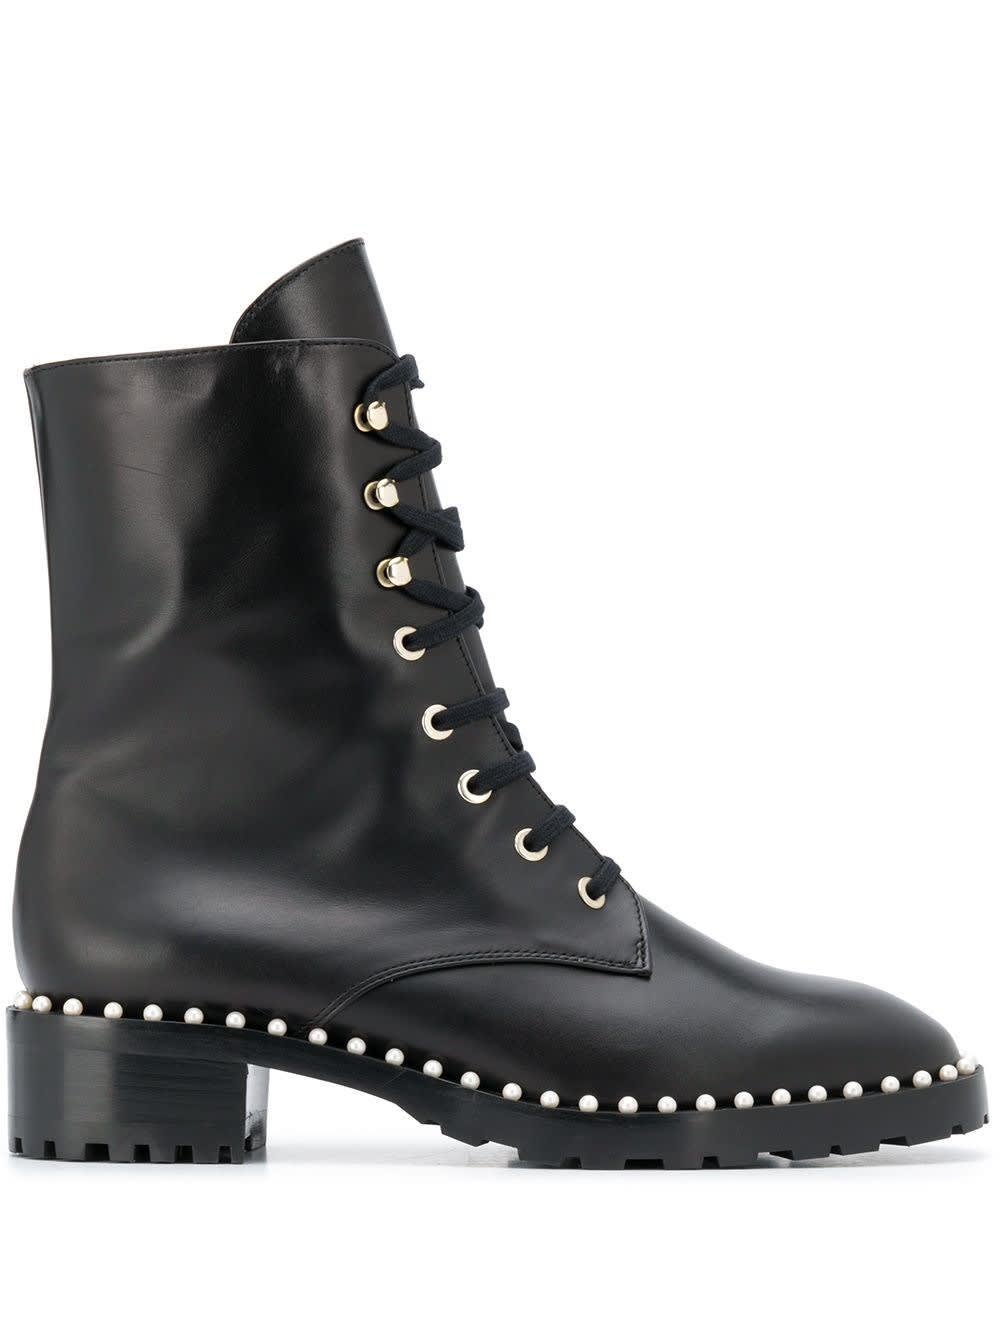 Buy Stuart Weitzman Allie Leather Ankle Boots With Studs Detail online, shop Stuart Weitzman shoes with free shipping